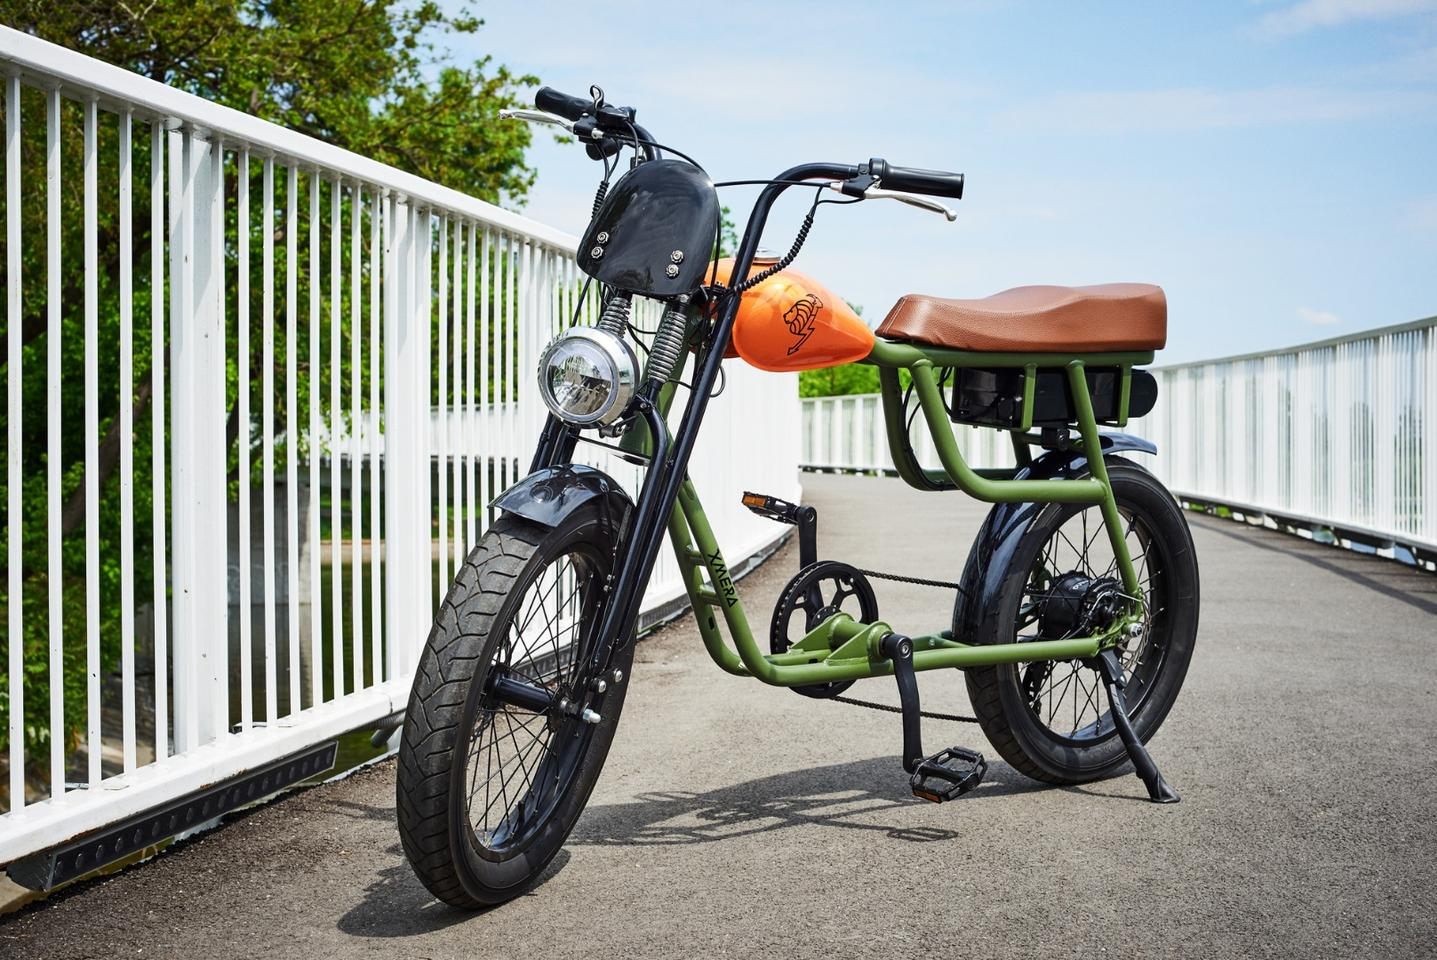 The base model Xmera incorporates a 250-watt rear hub motor, powered by a 36V/10Ah Samsung lithium-ion battery